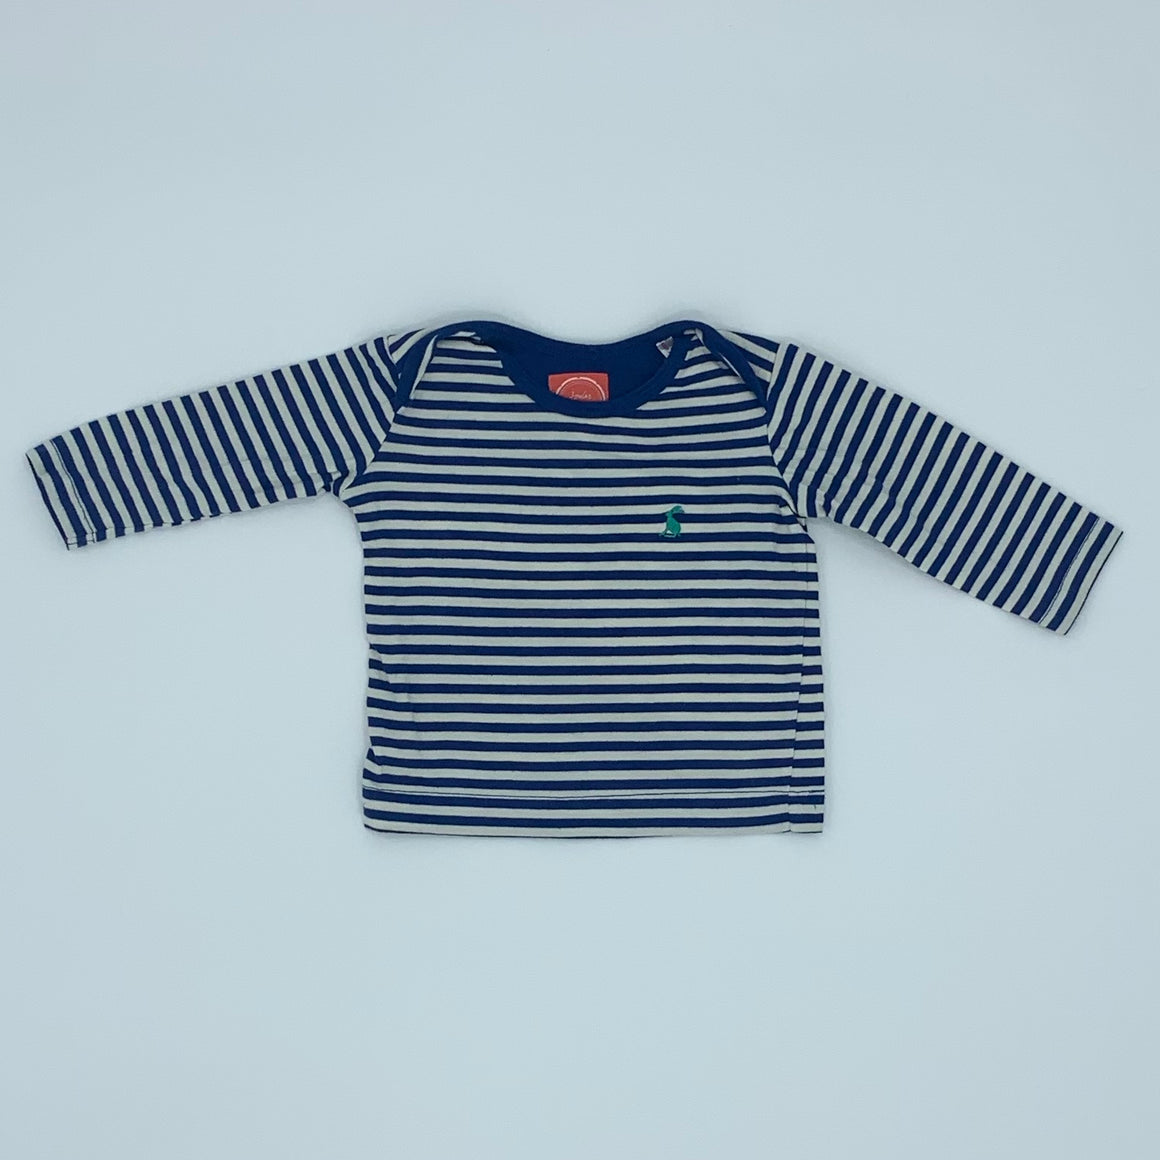 Hardly Worn Joules striped top size 0-3 months